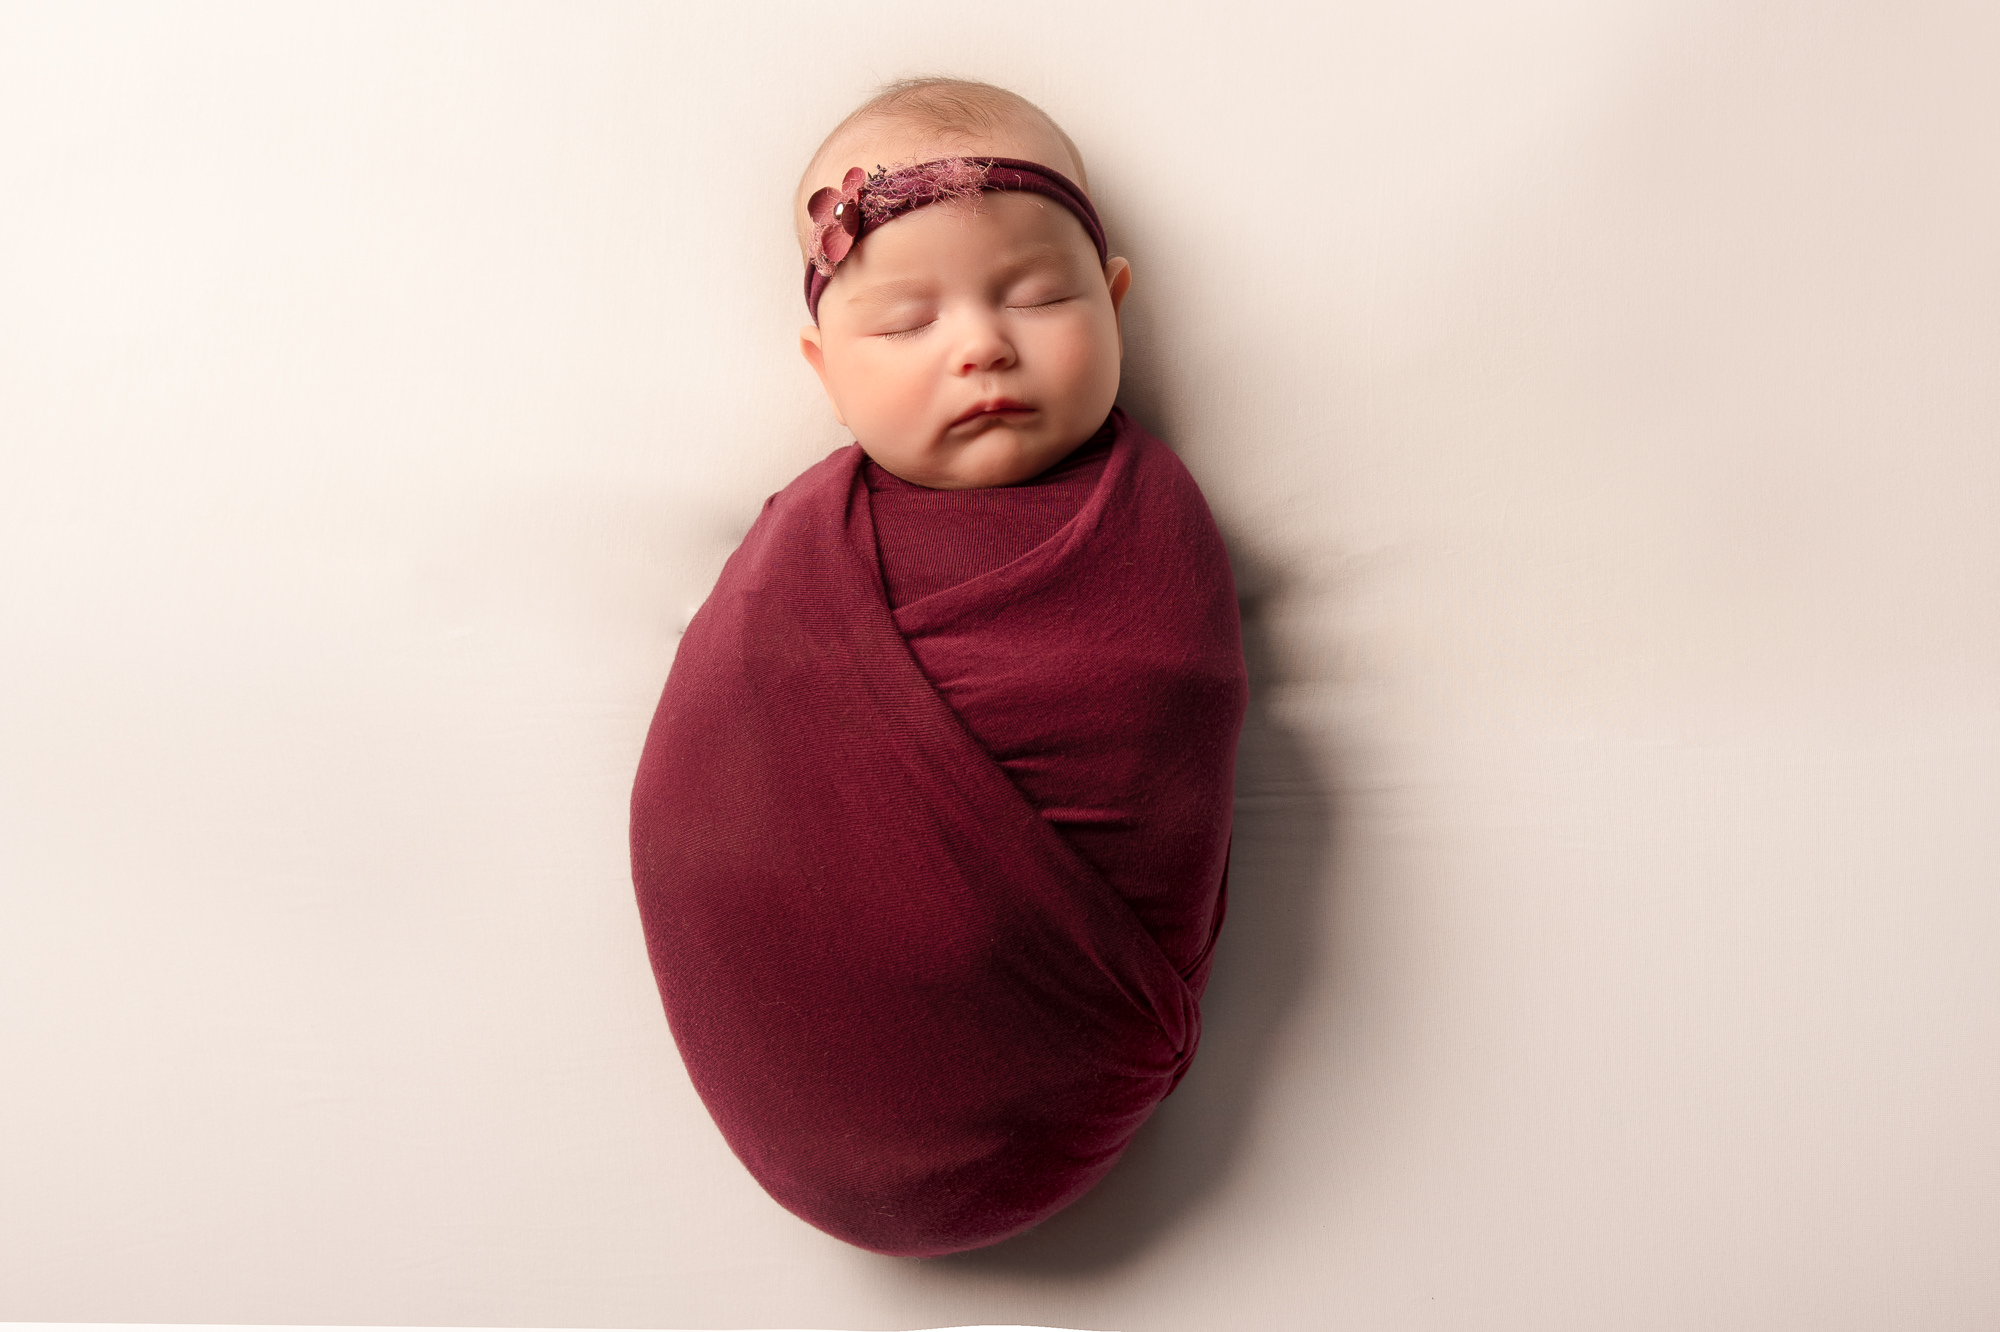 SNUG BABY GIRL WRAPPED NEWBORN PHOTO